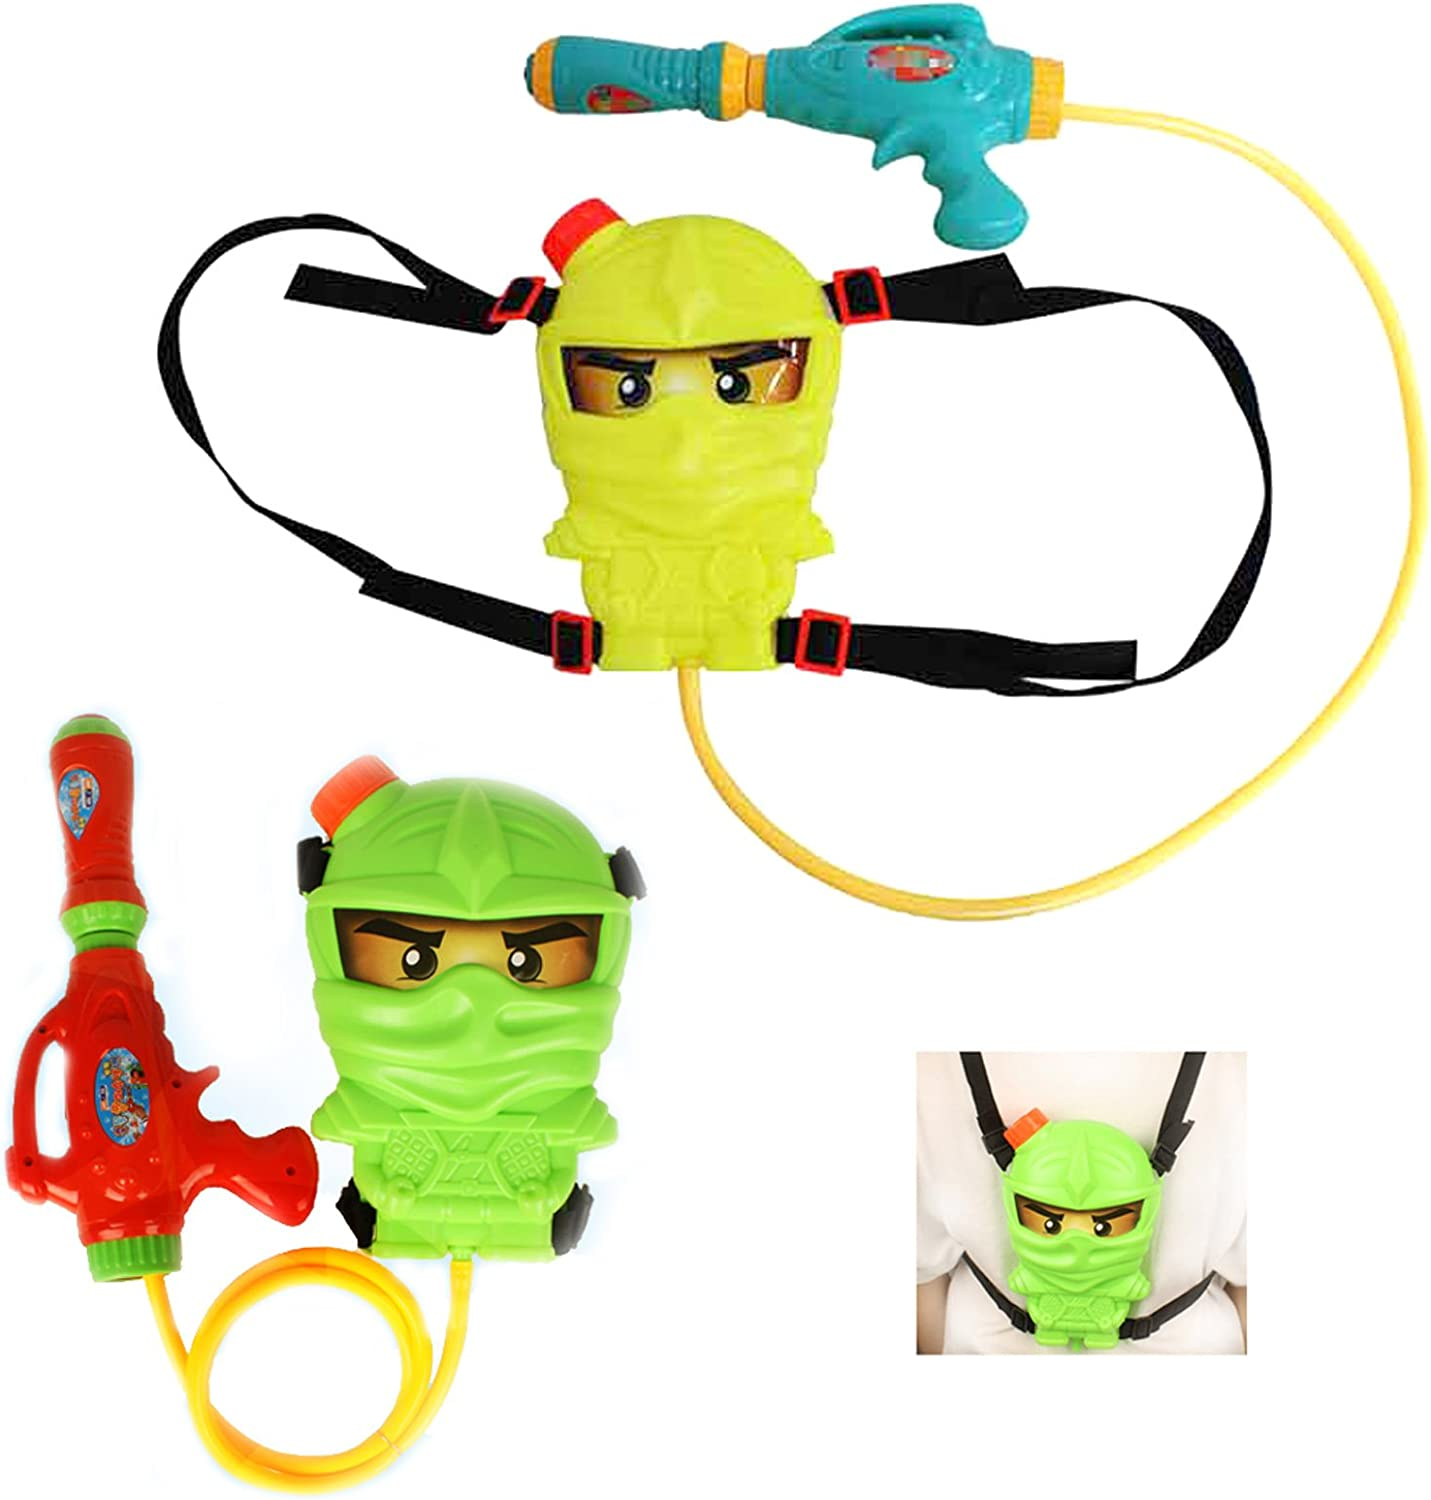 Amazon.com: Ninja Water Guns Ninjago Backpack Best Powerful ...